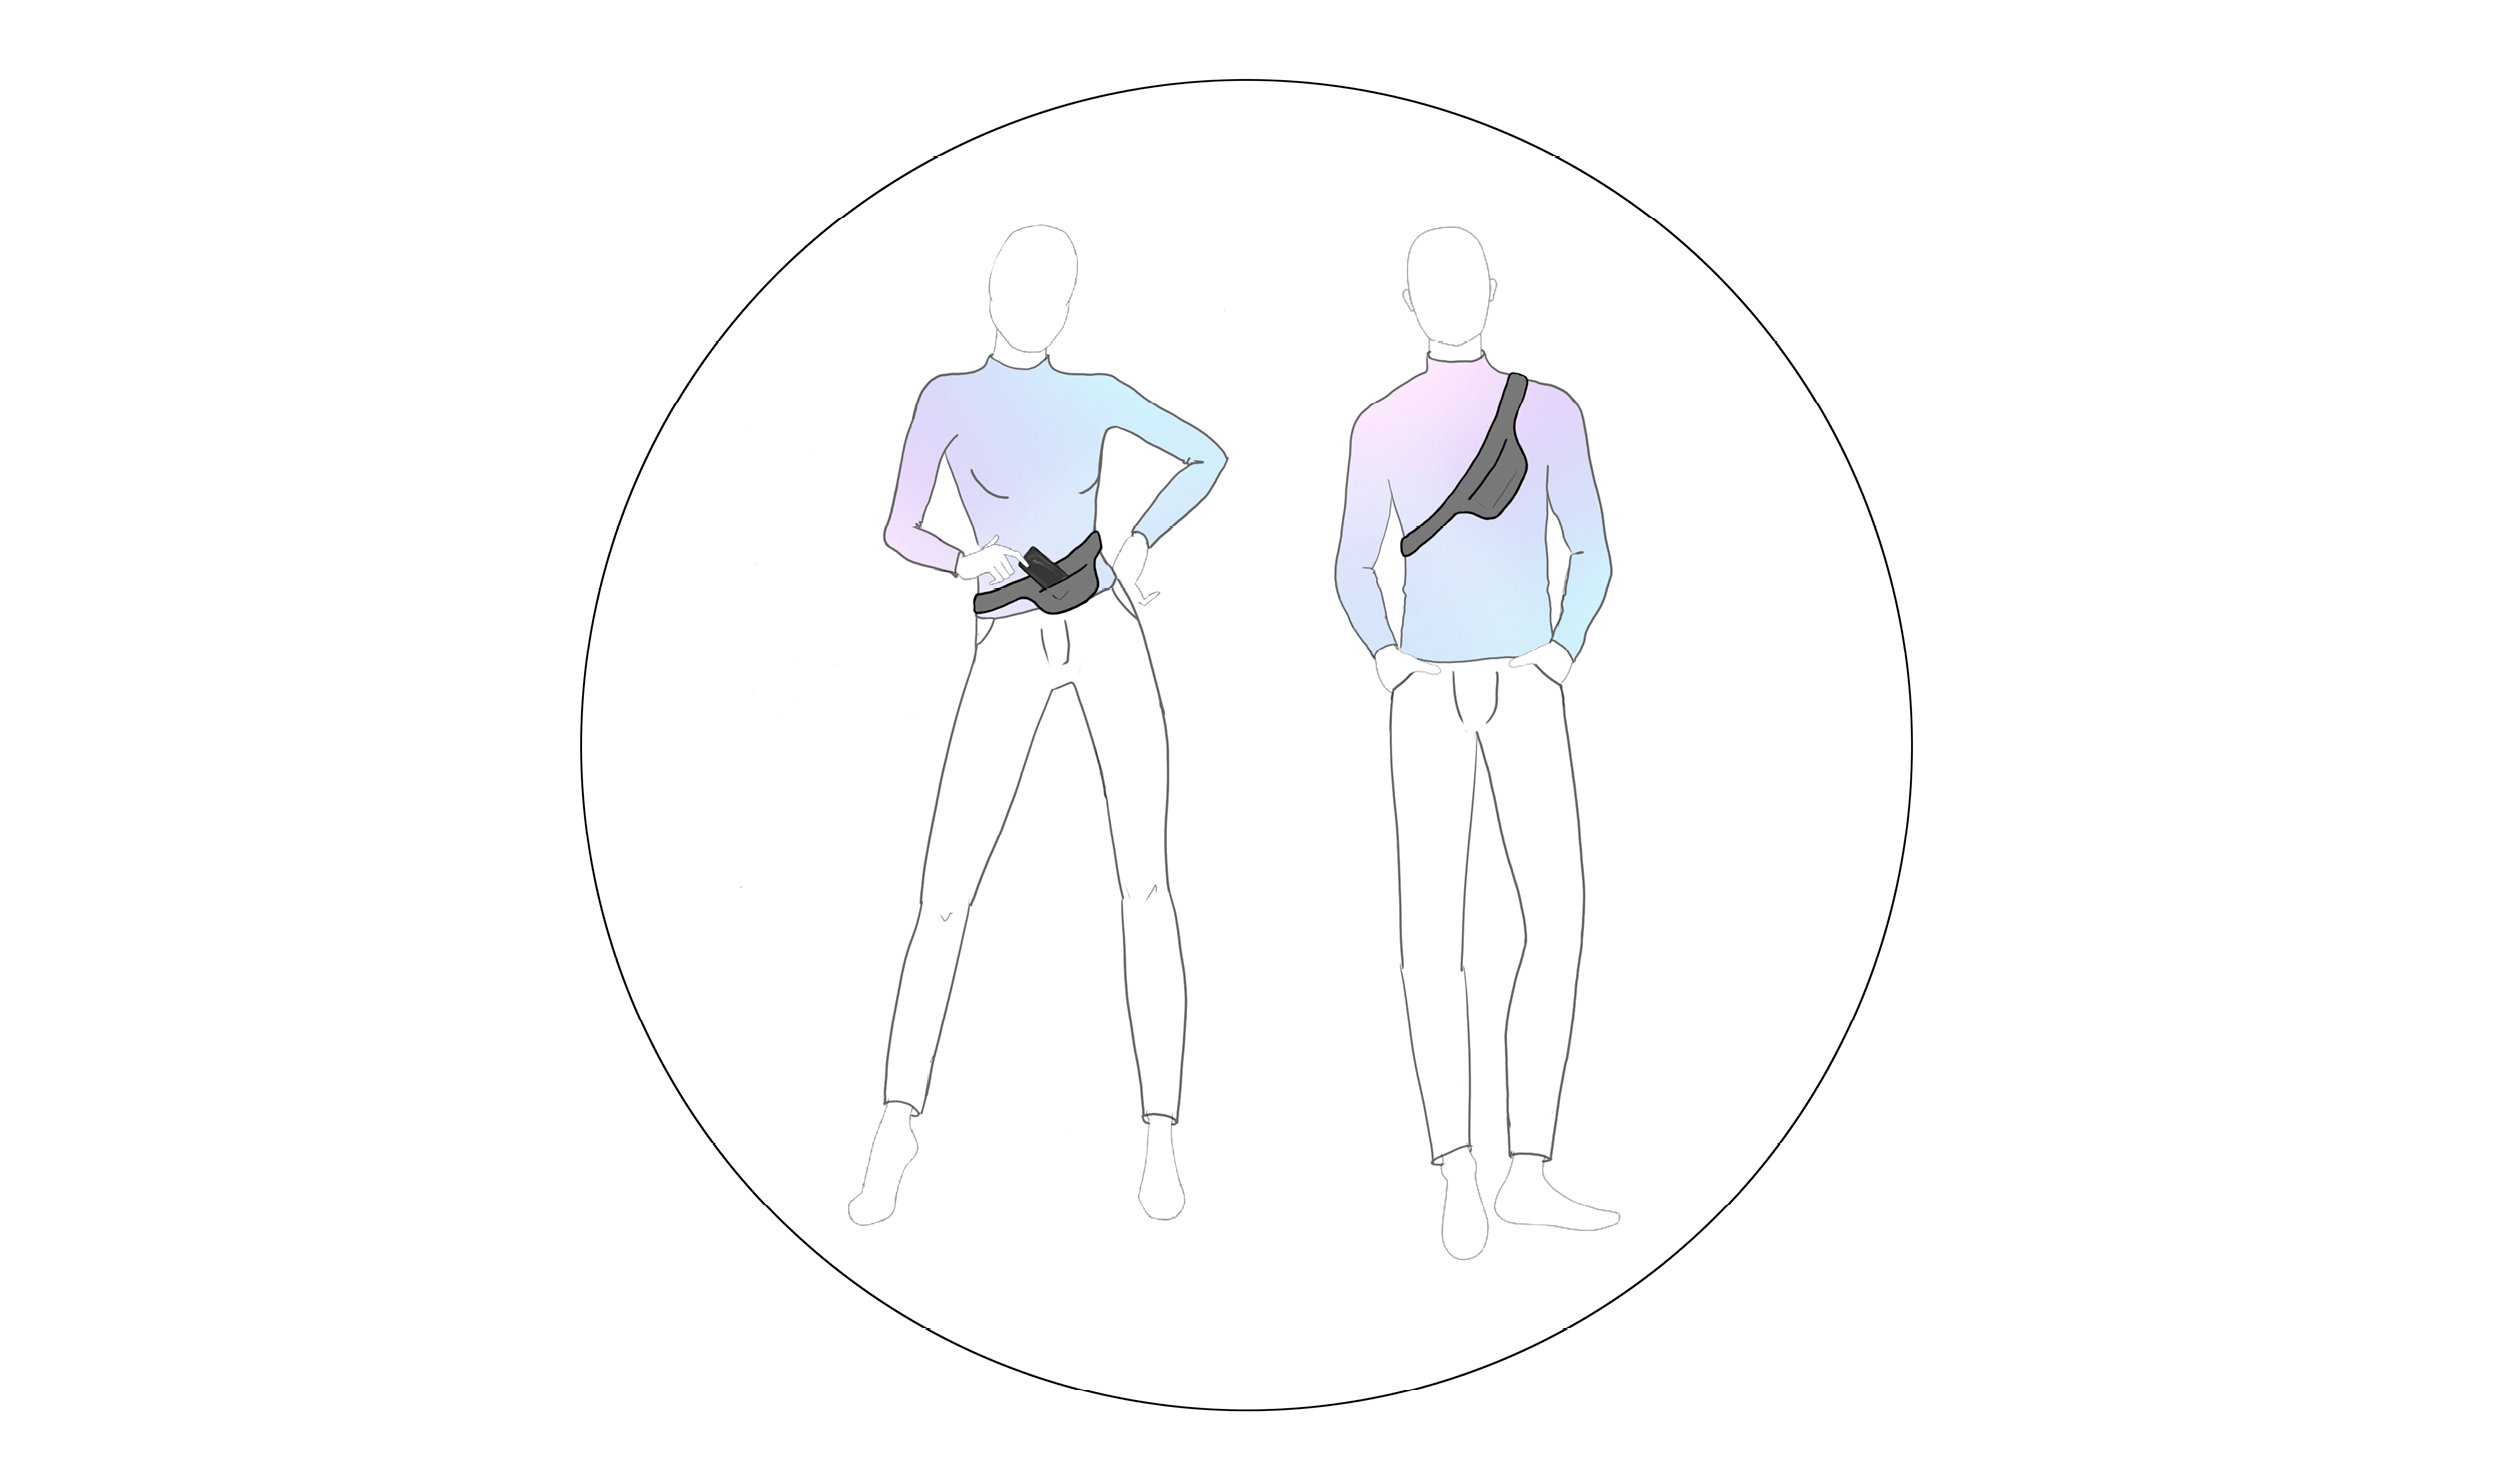 a male and a female wearing the same gender neutral outfit